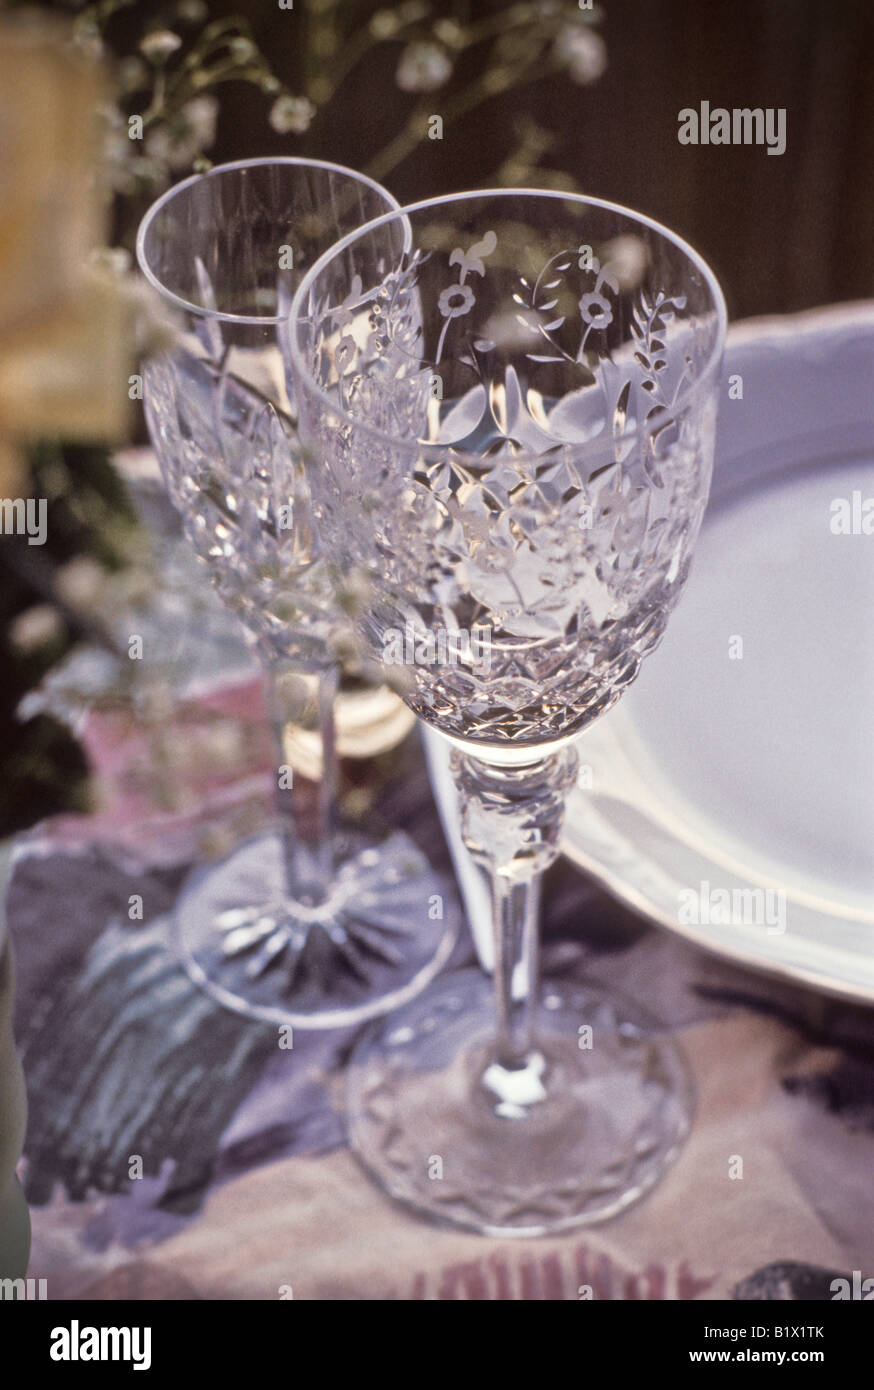 crystal wine goblet water glass on formal table setting & crystal wine goblet water glass on formal table setting Stock Photo ...